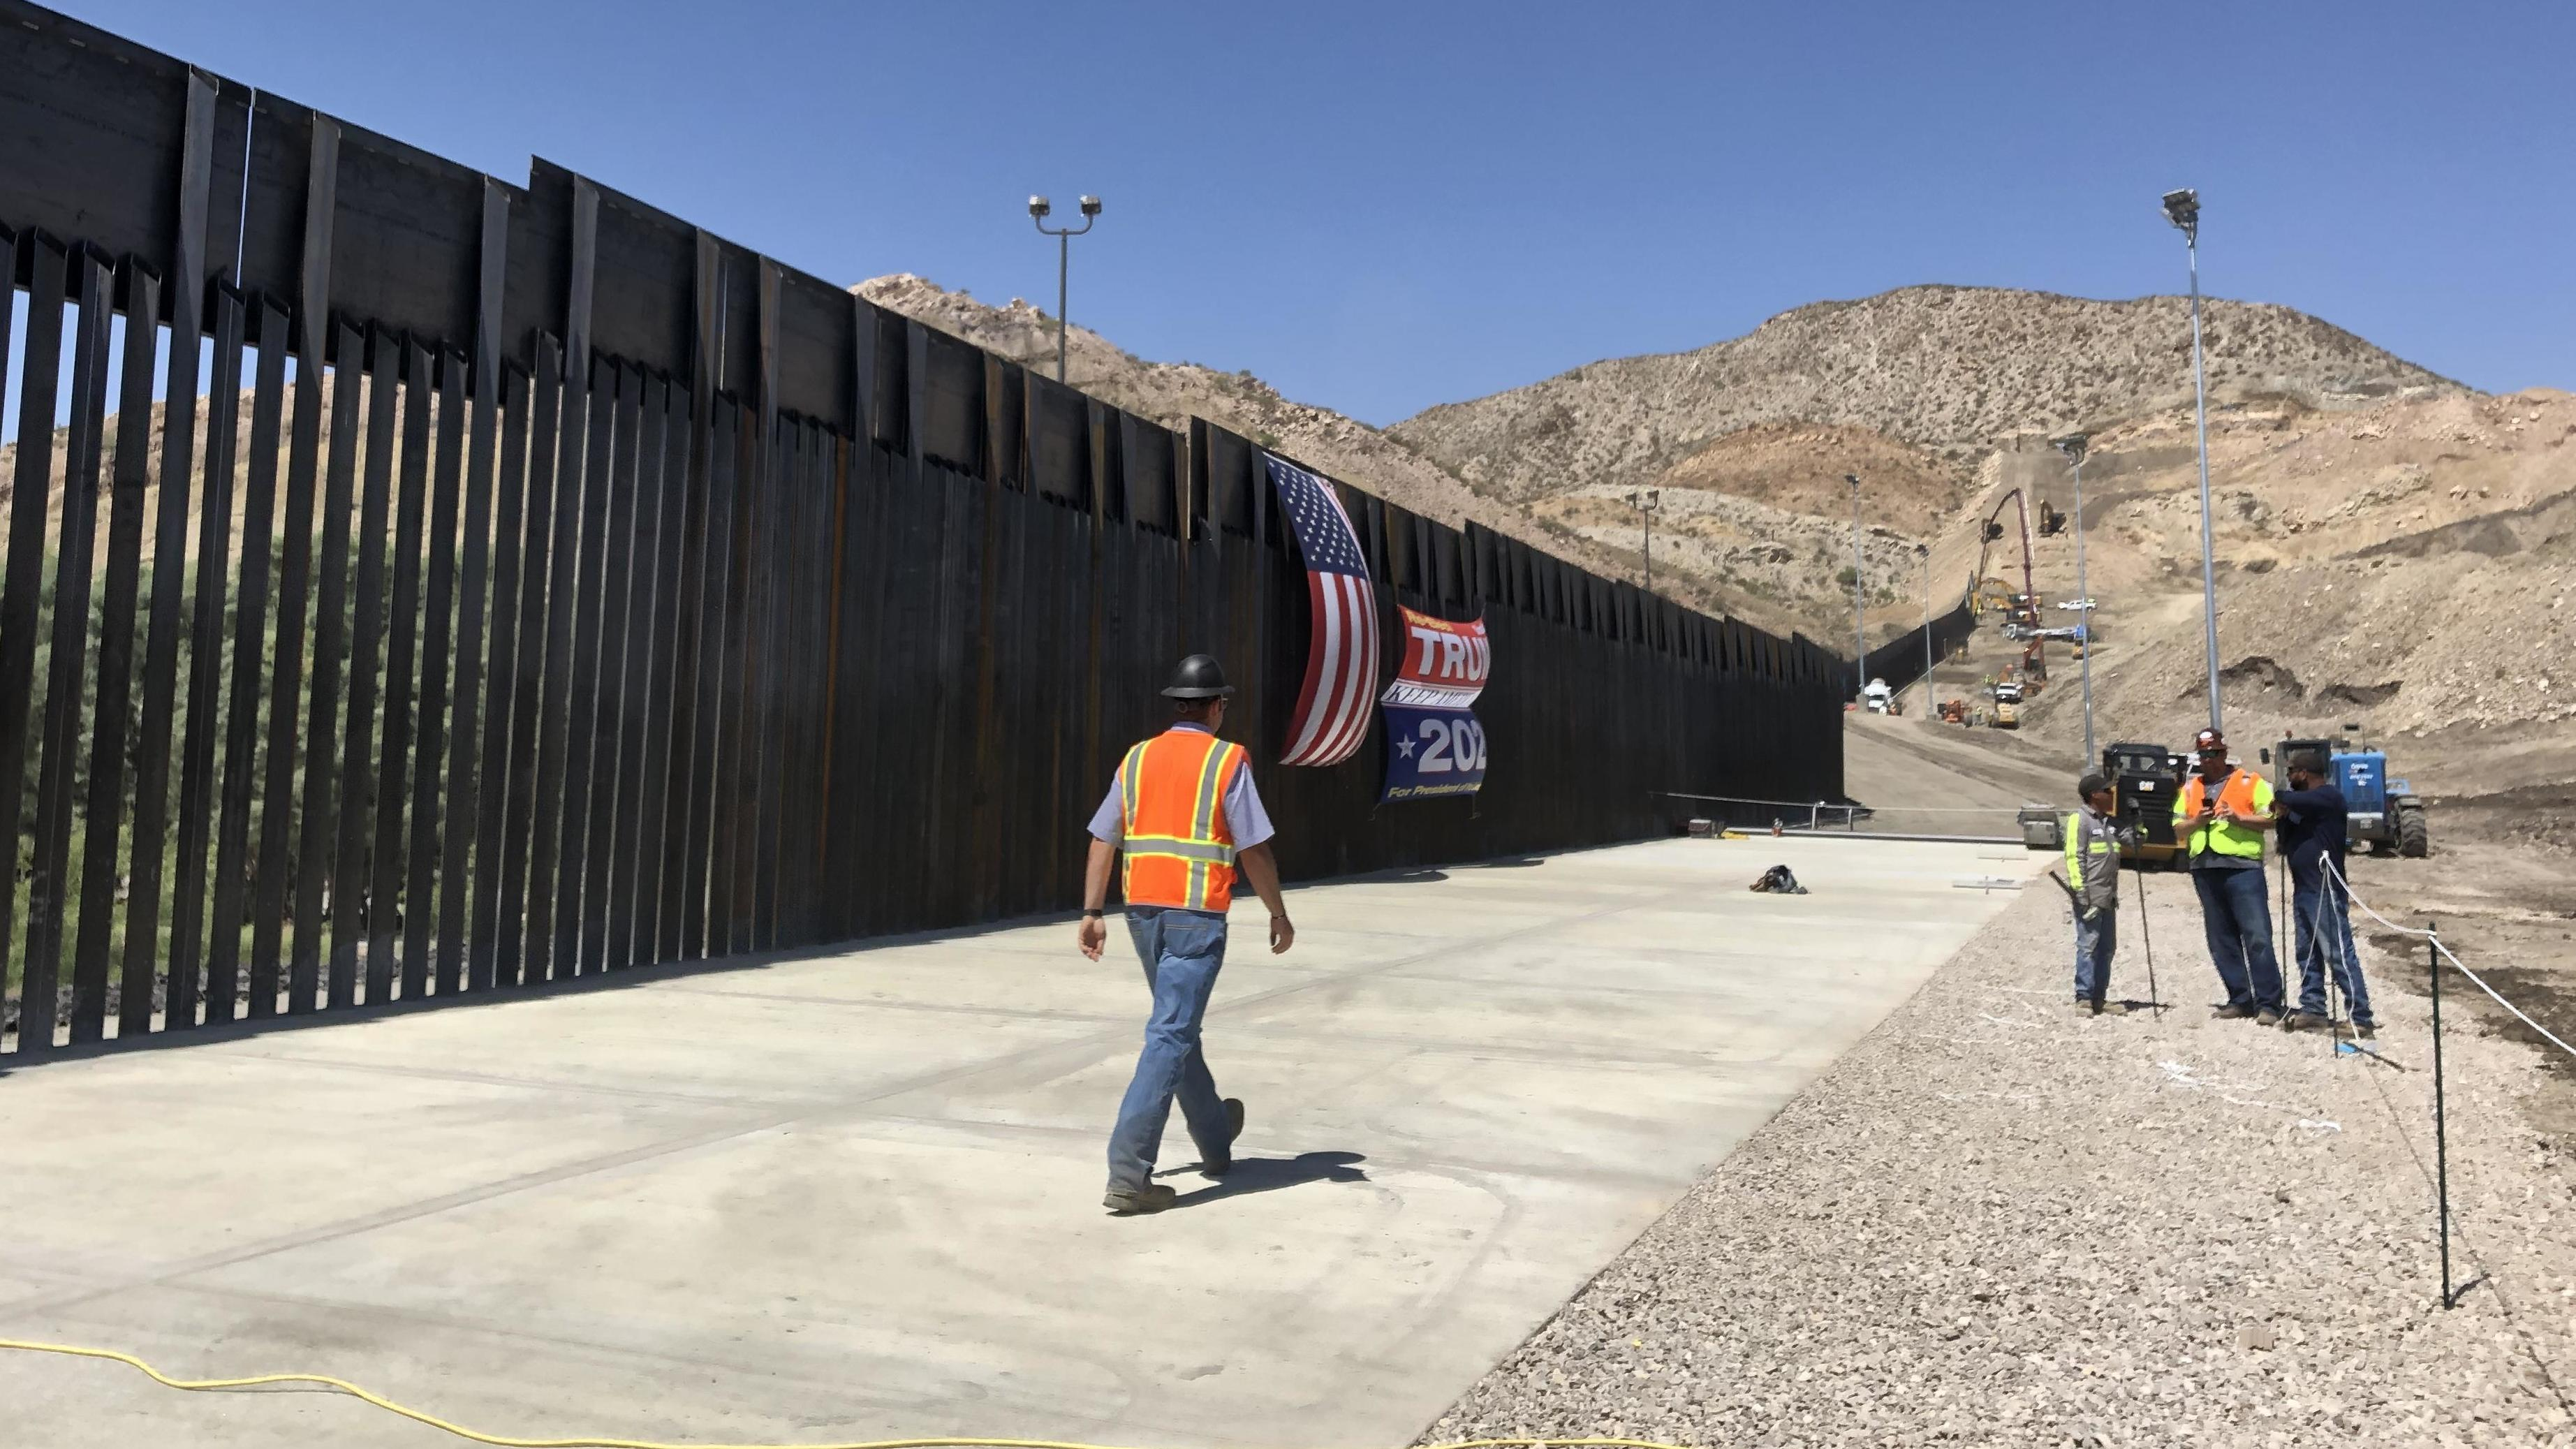 Construction is nearly complete in New Mexico on a section of border wall built with private funds, raised by a non-profit called We Build The Wall.